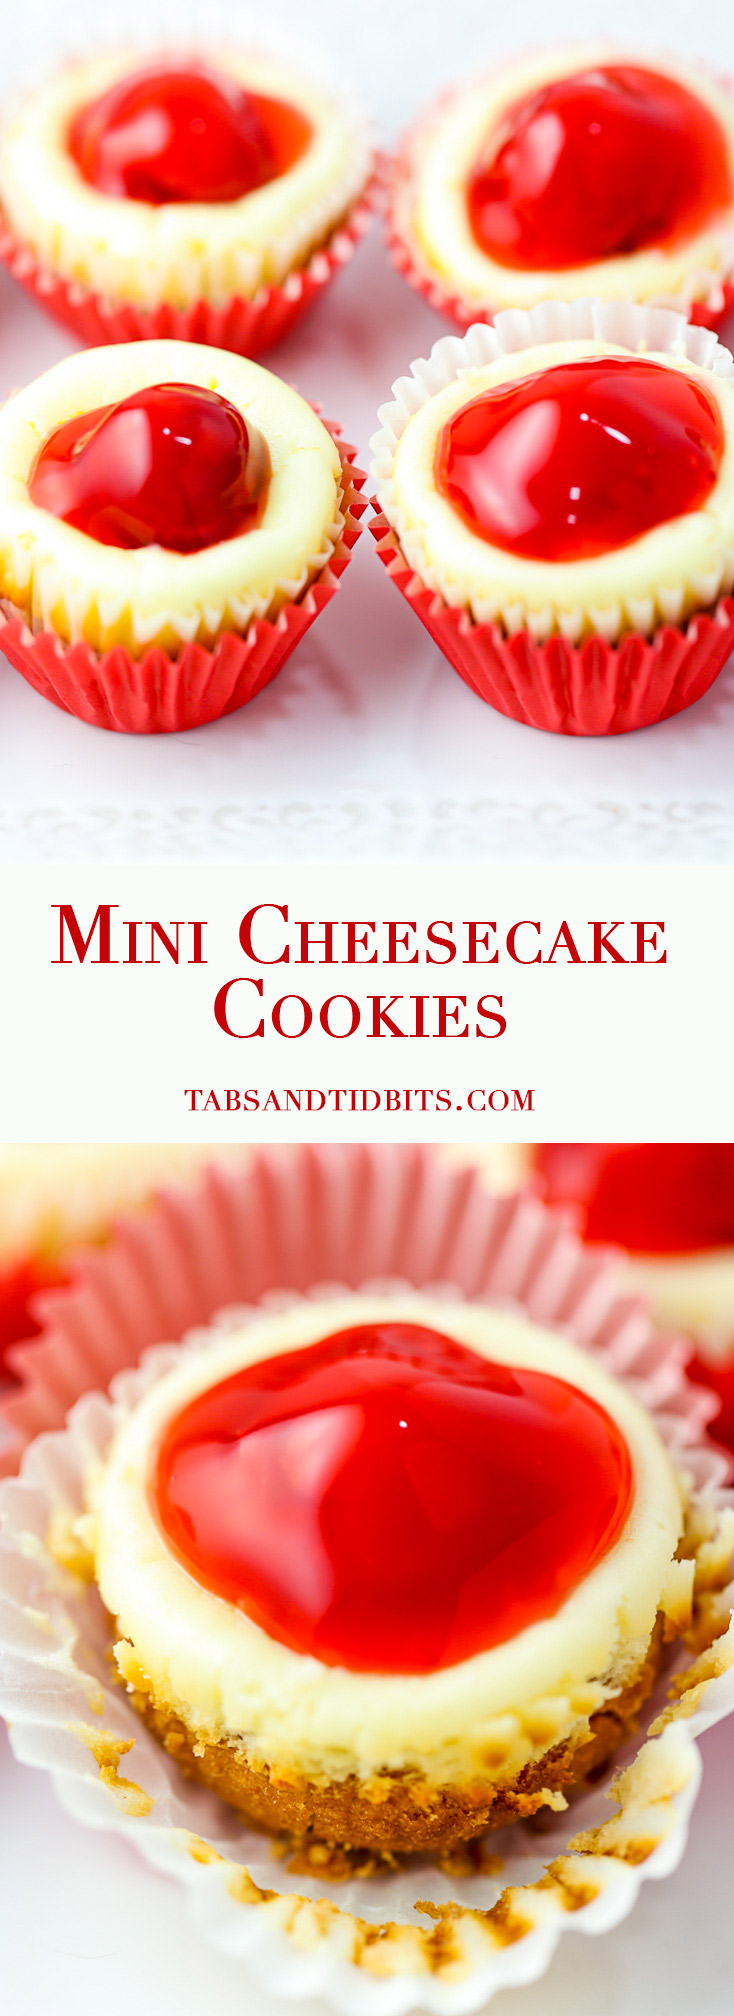 Mini Cheesecake Cookies - A cheesecake and cookie in one perfect bite!